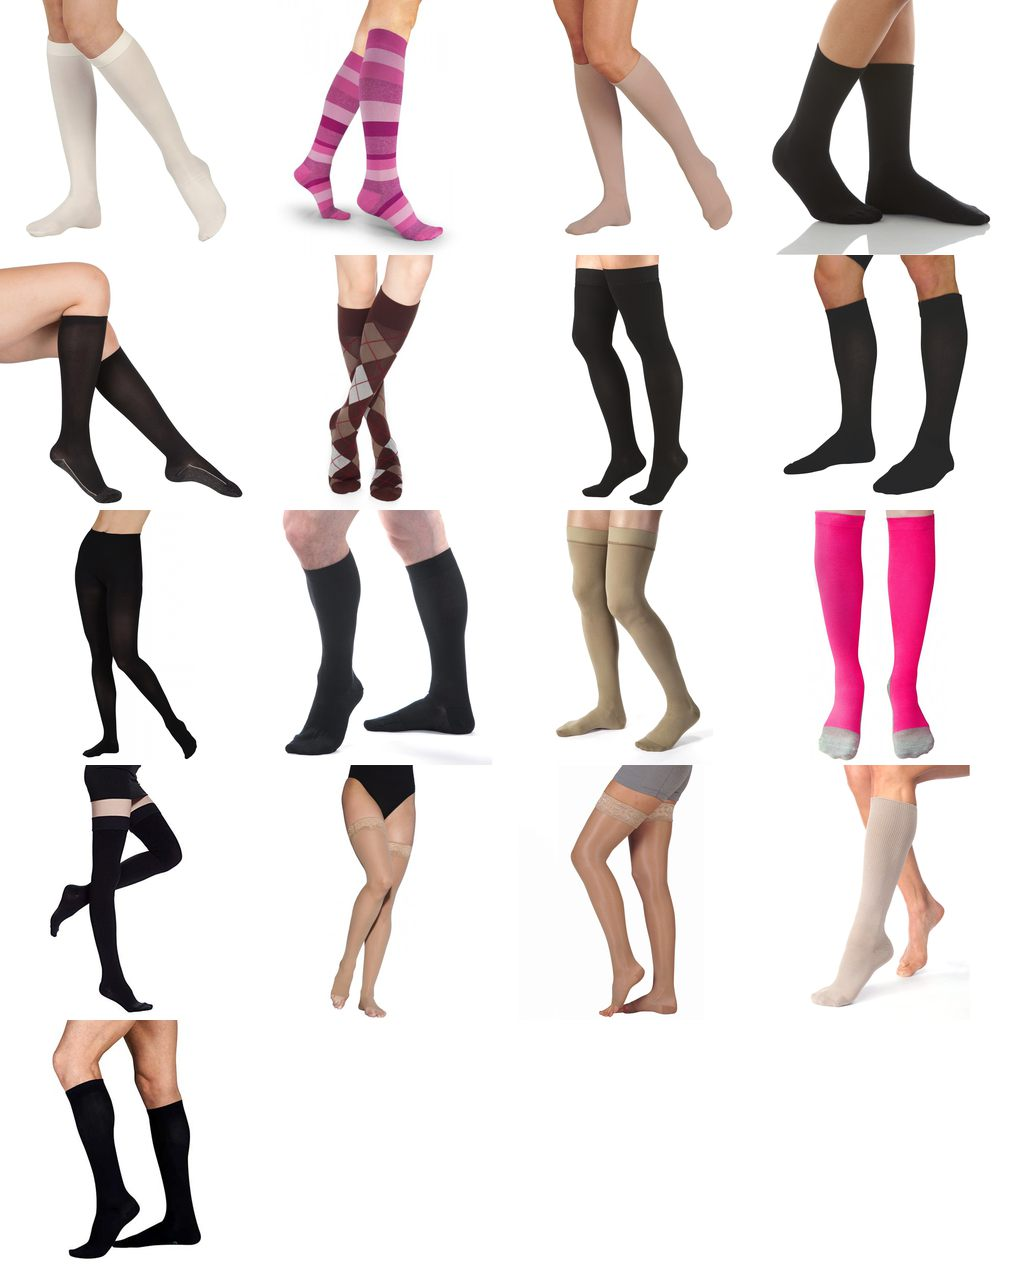 compression socks 20-30mmhg